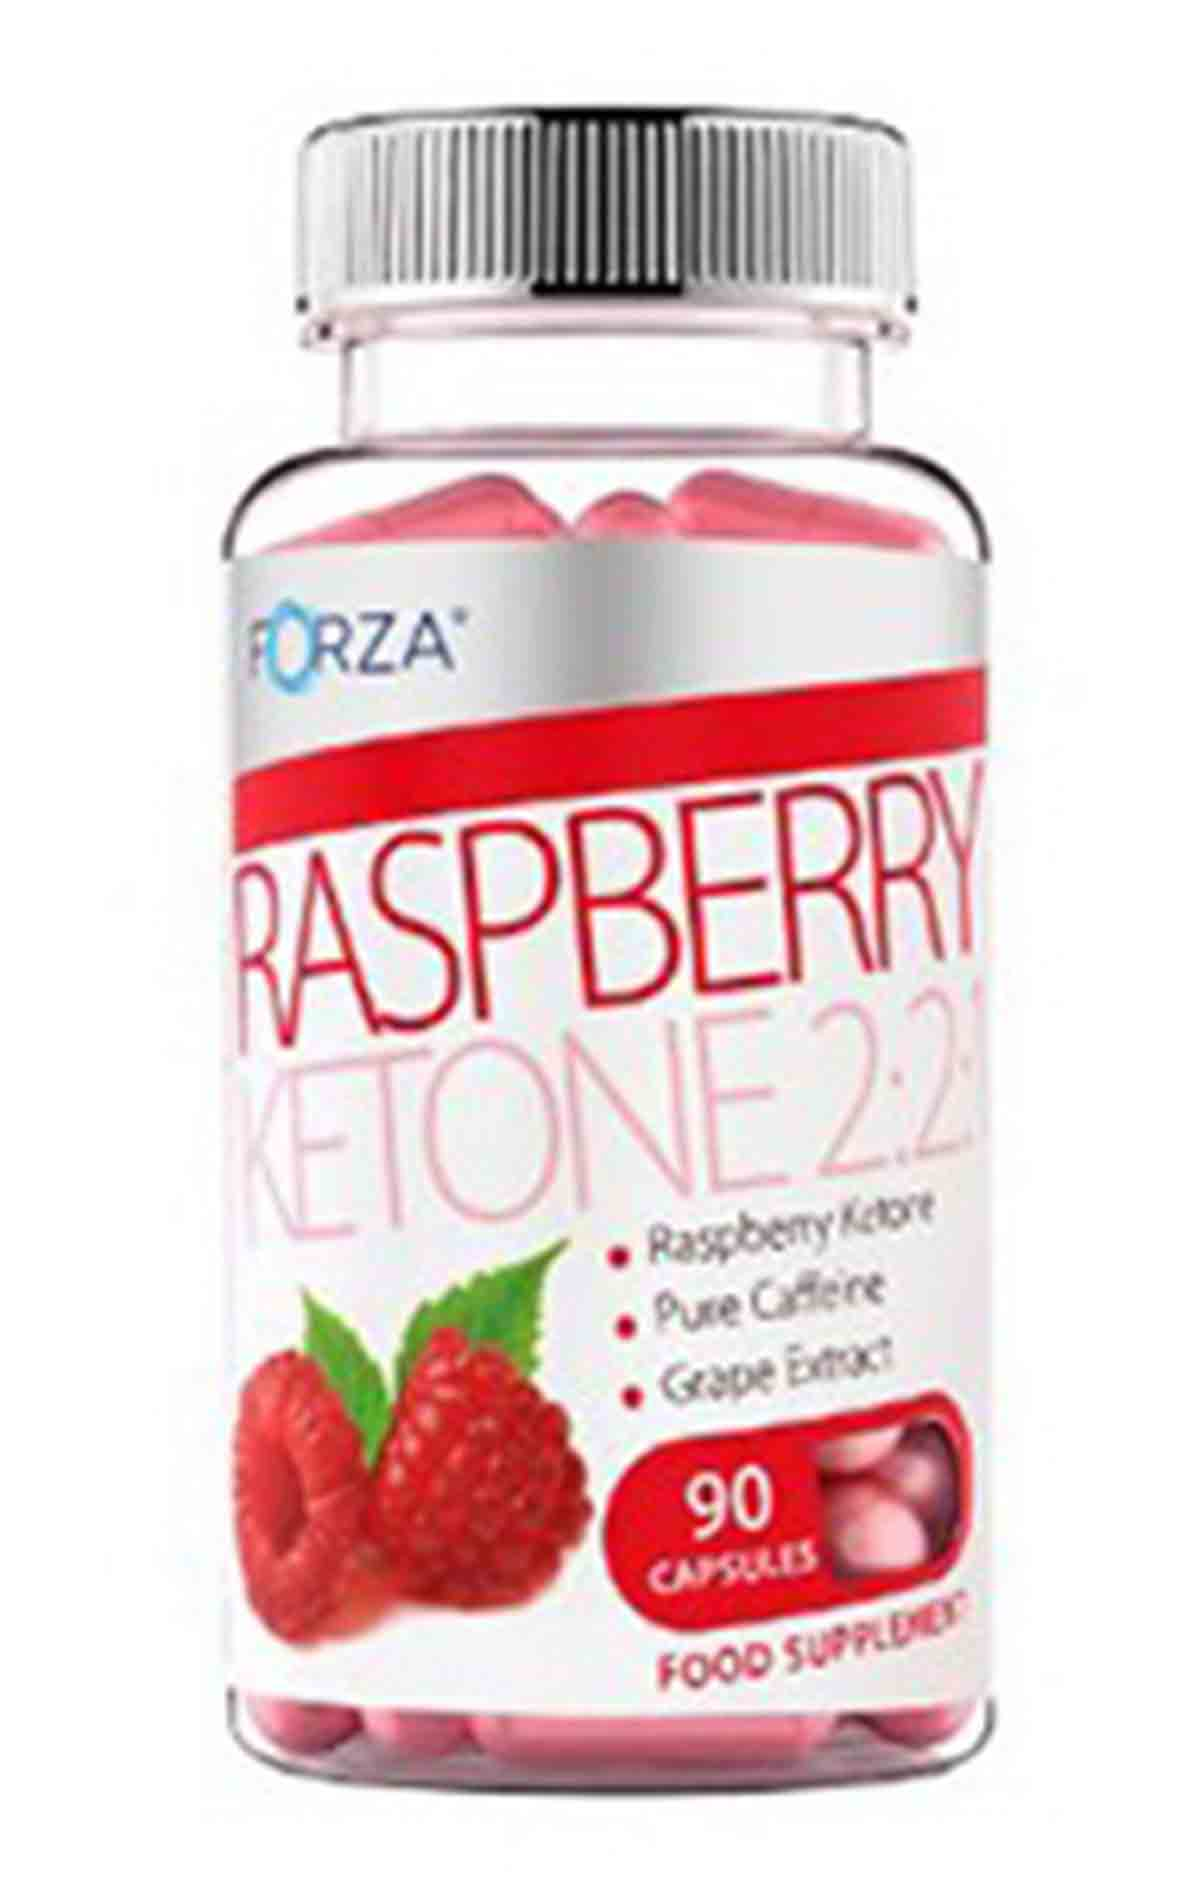 Diet Pills Watchdog Forza Raspberry Ketone With Collagen Buy Scam